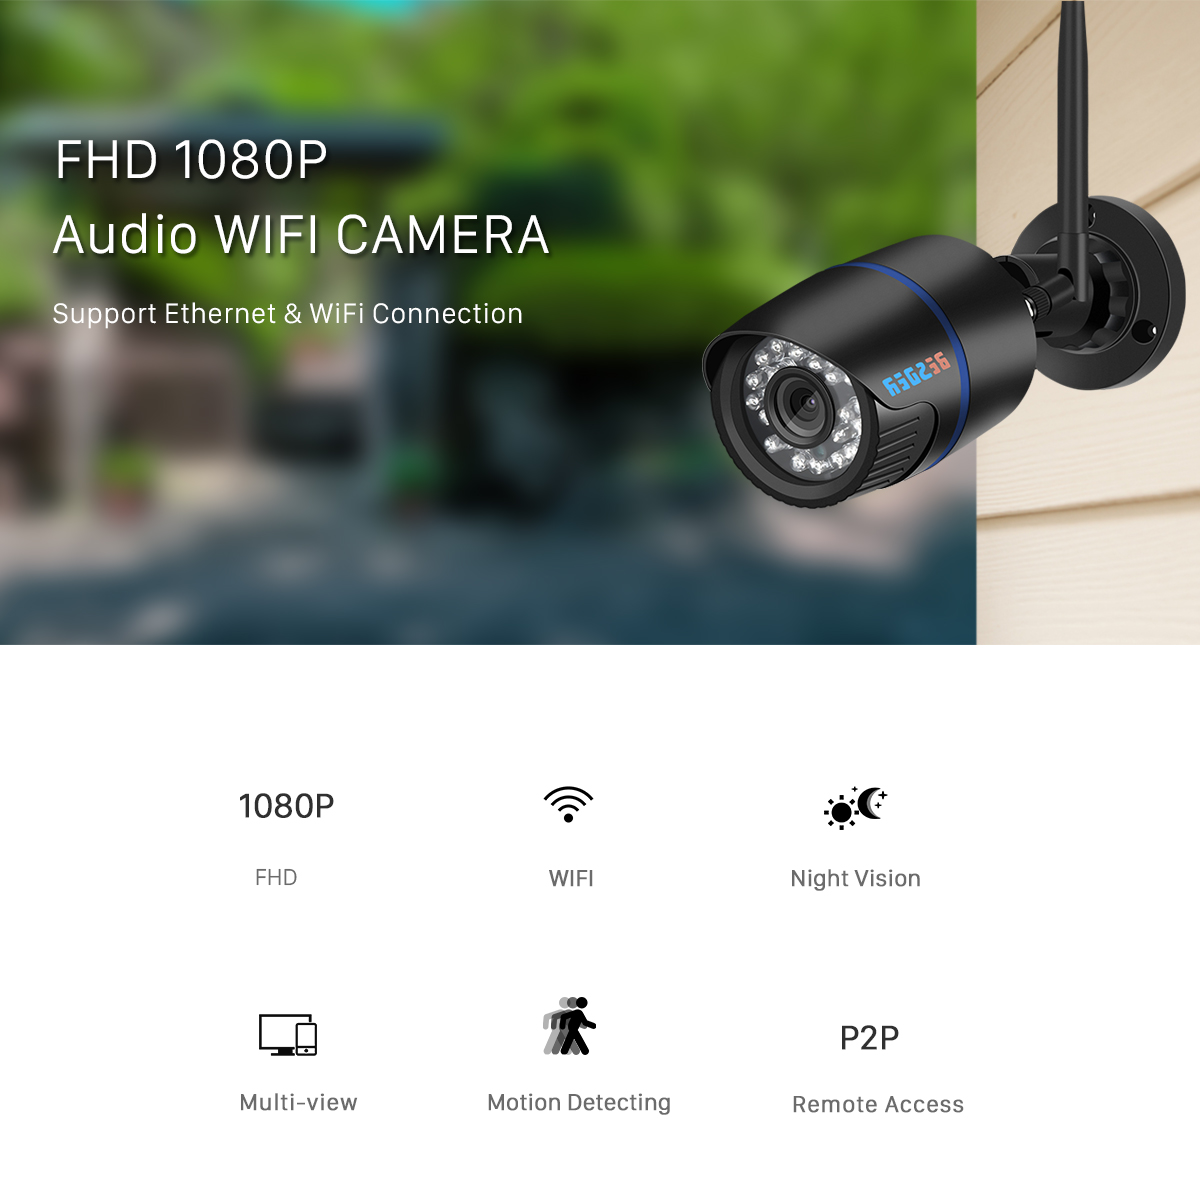 Hea92e80f31f946c49bc5ee5e665e3c45H BESDER iCsee Audio Security IP Camera 1080P Wireless Wired ONVIF CCTV Surveillance Outdoor Wifi Camera With SD Card Slot Max 64G